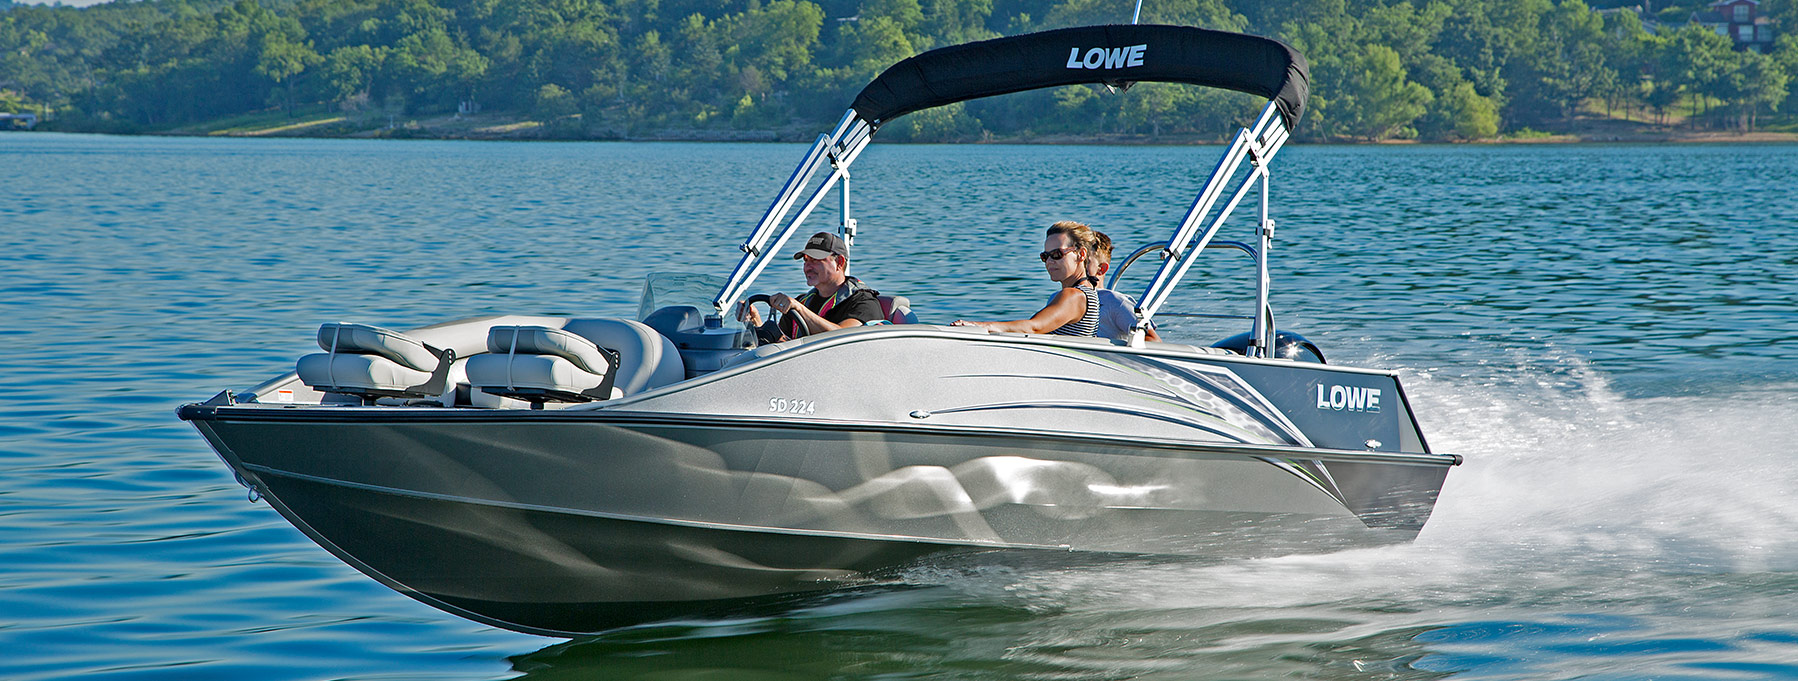 Lowe 2018 deck boats aluminum fishing runabout boat for Fishing deck boats